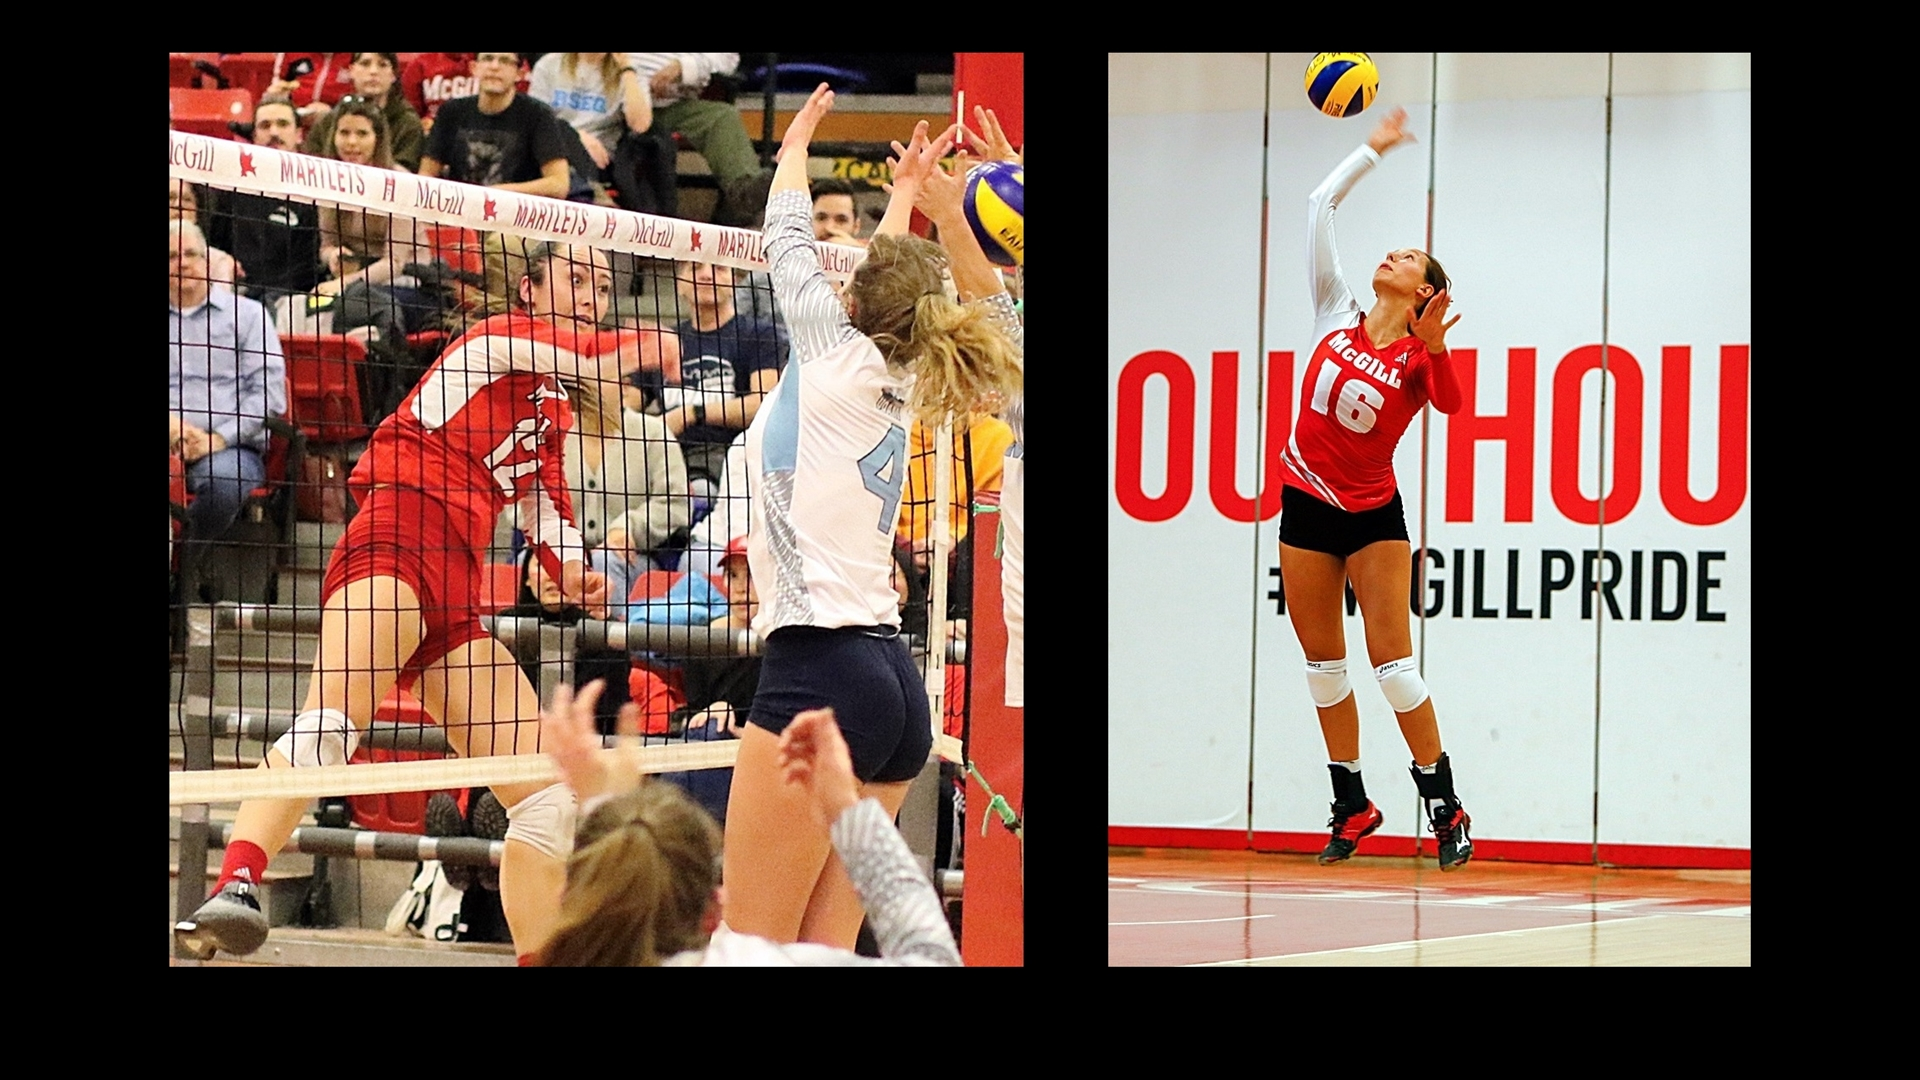 McGill volleyball's Vercheval merits All-Canadian status